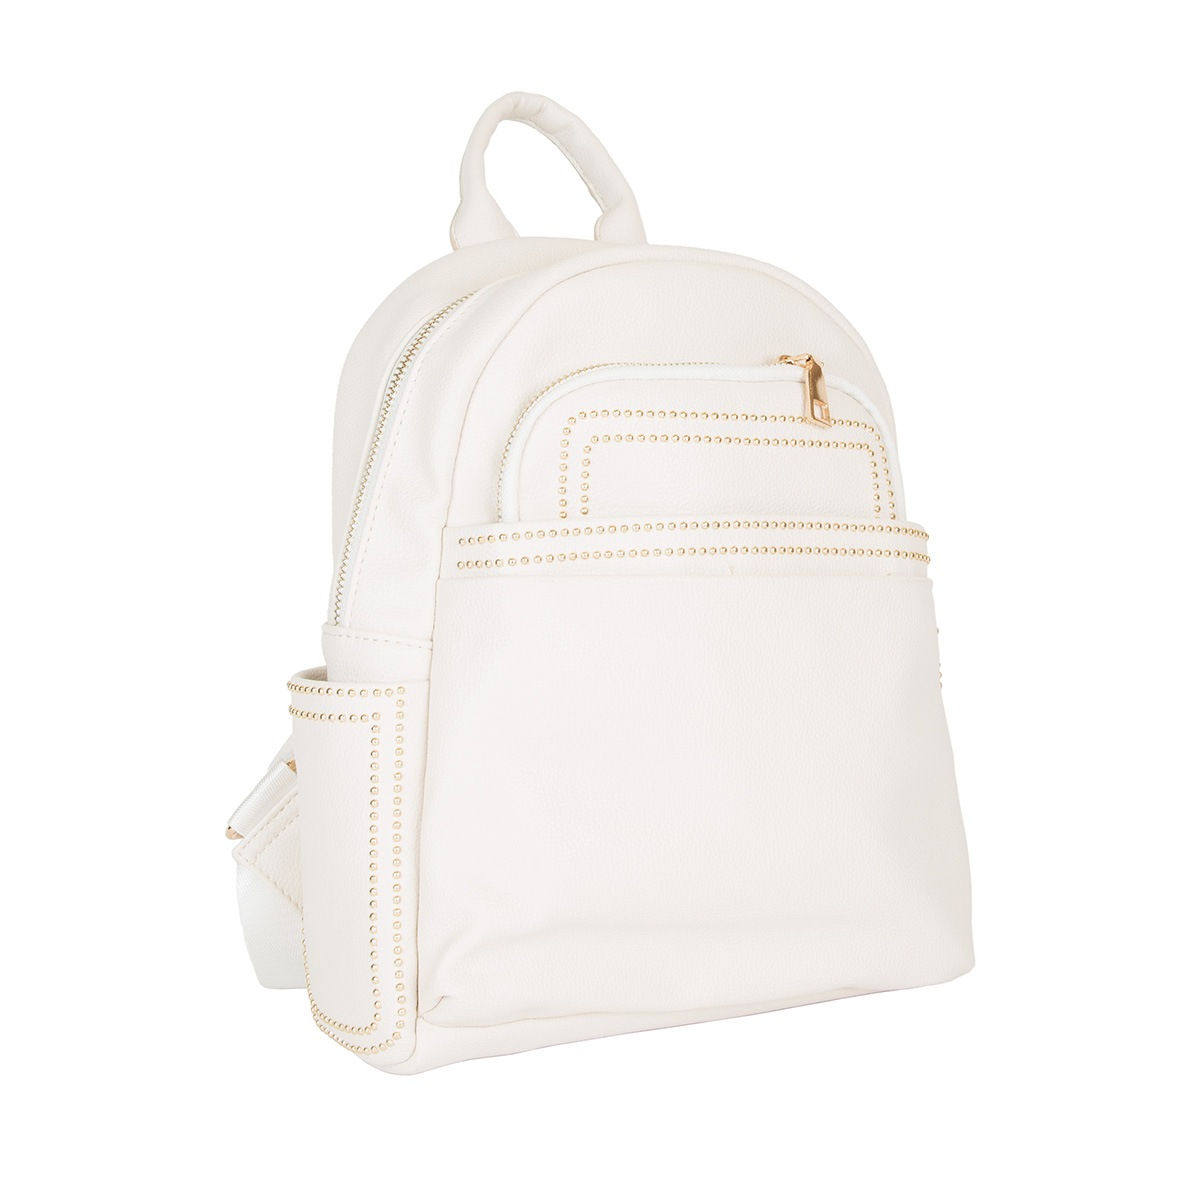 Bagsin-Savil-18-42-08-White-A1